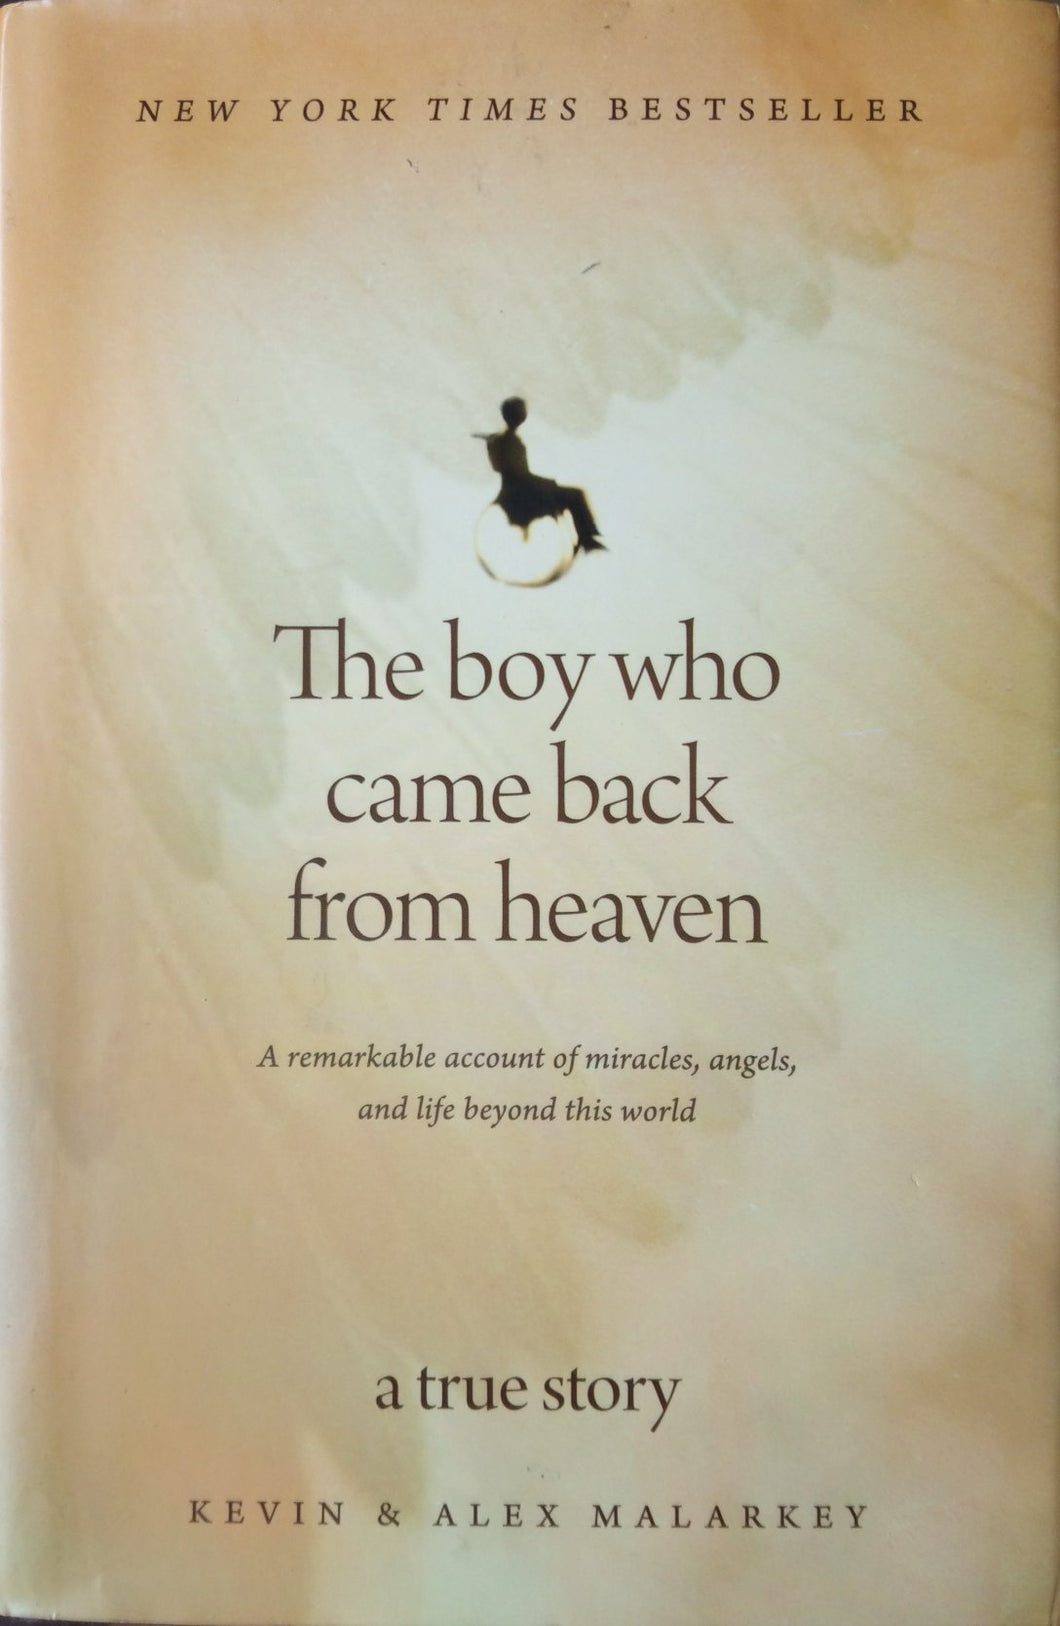 The Boy Who Came Back From Heaven by Kevin Malarkey